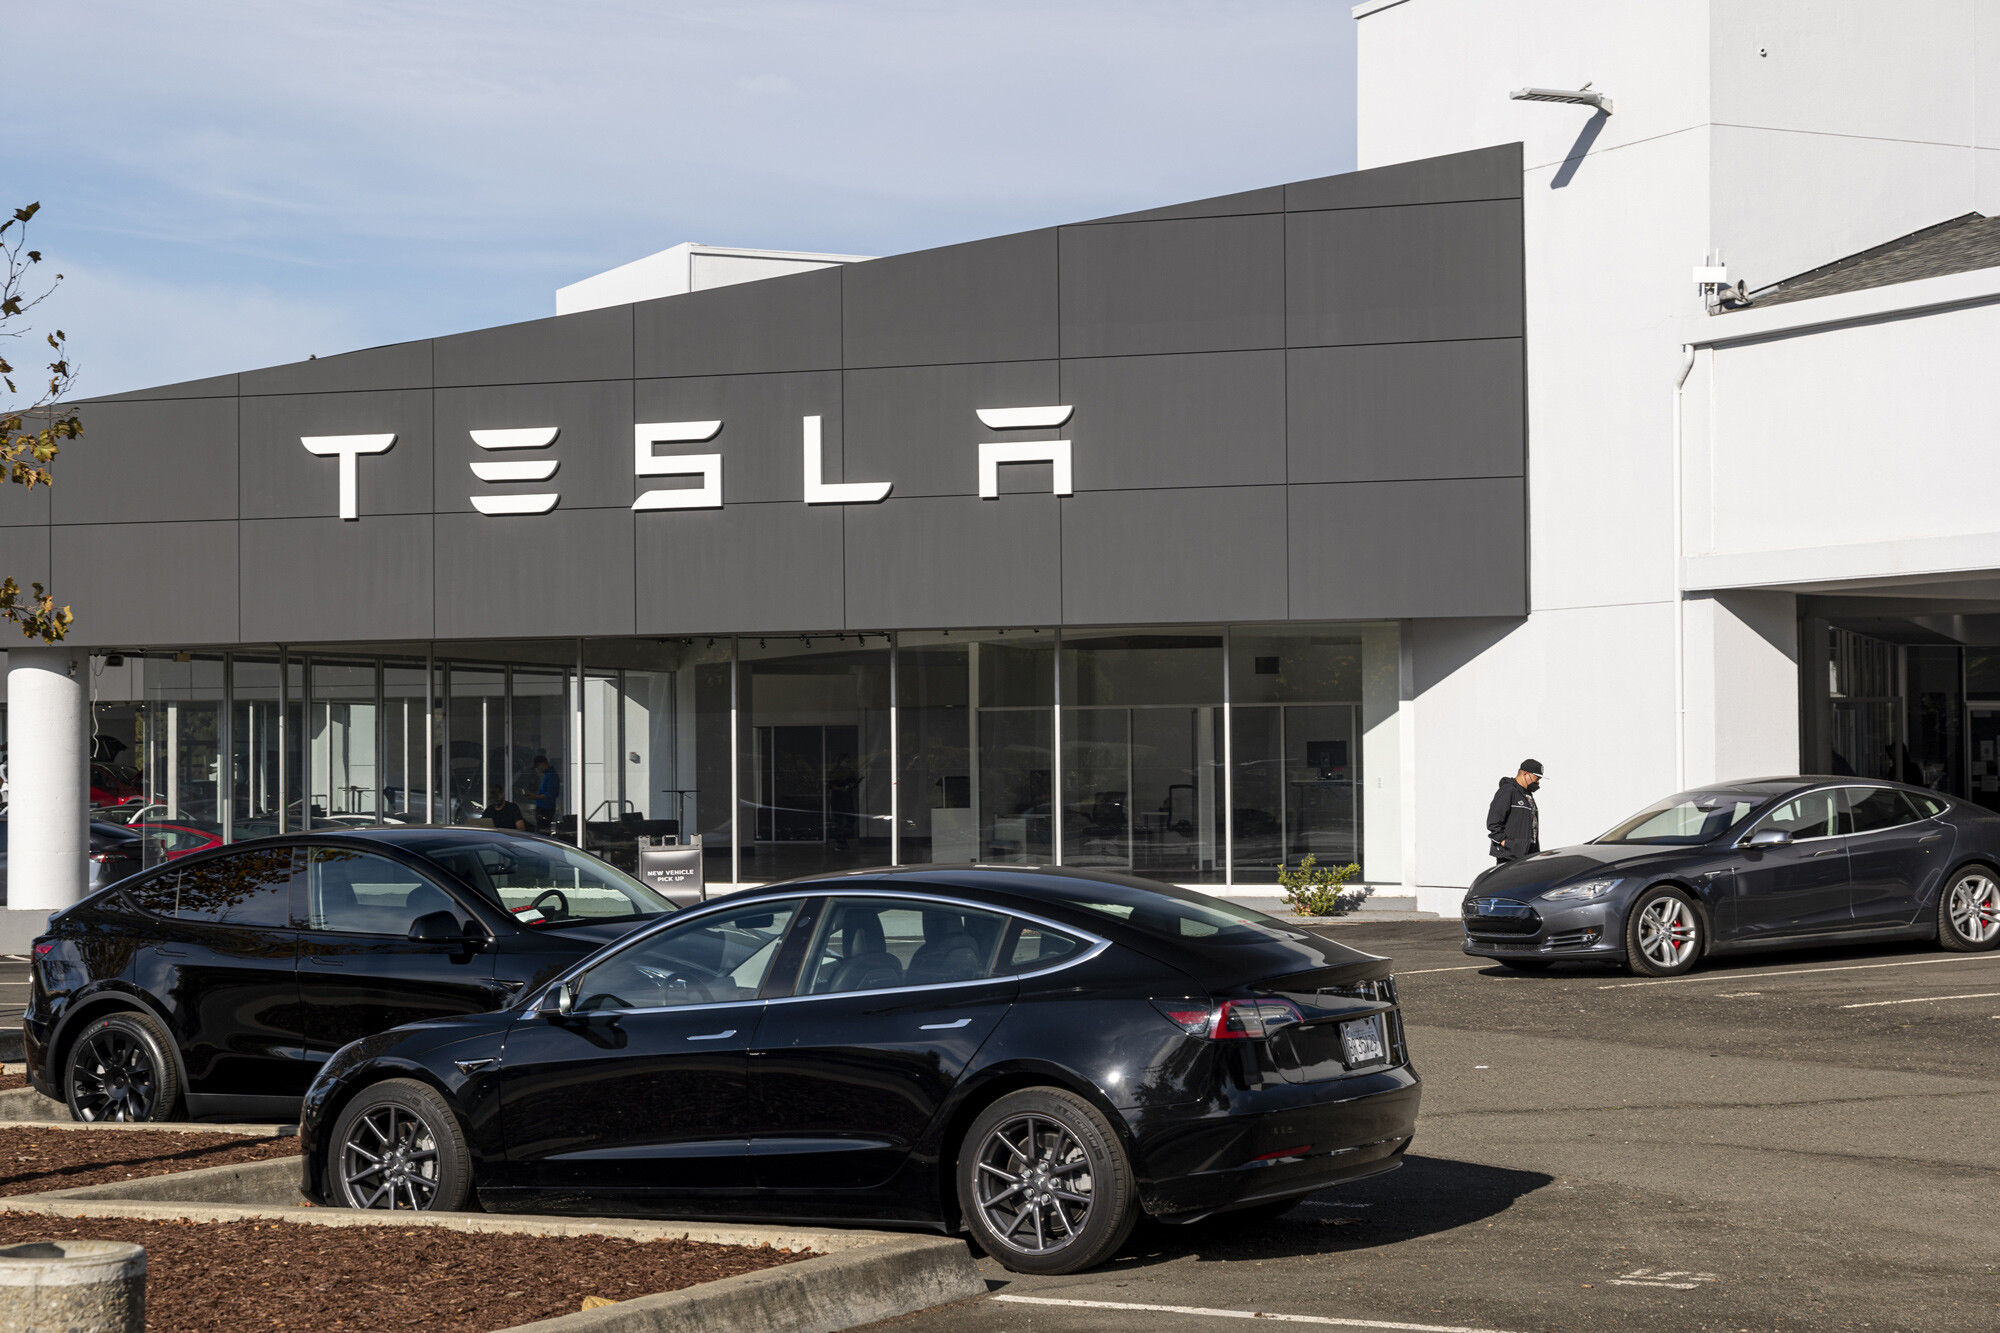 Tesla shakes off supply chain issues to post record profit, again